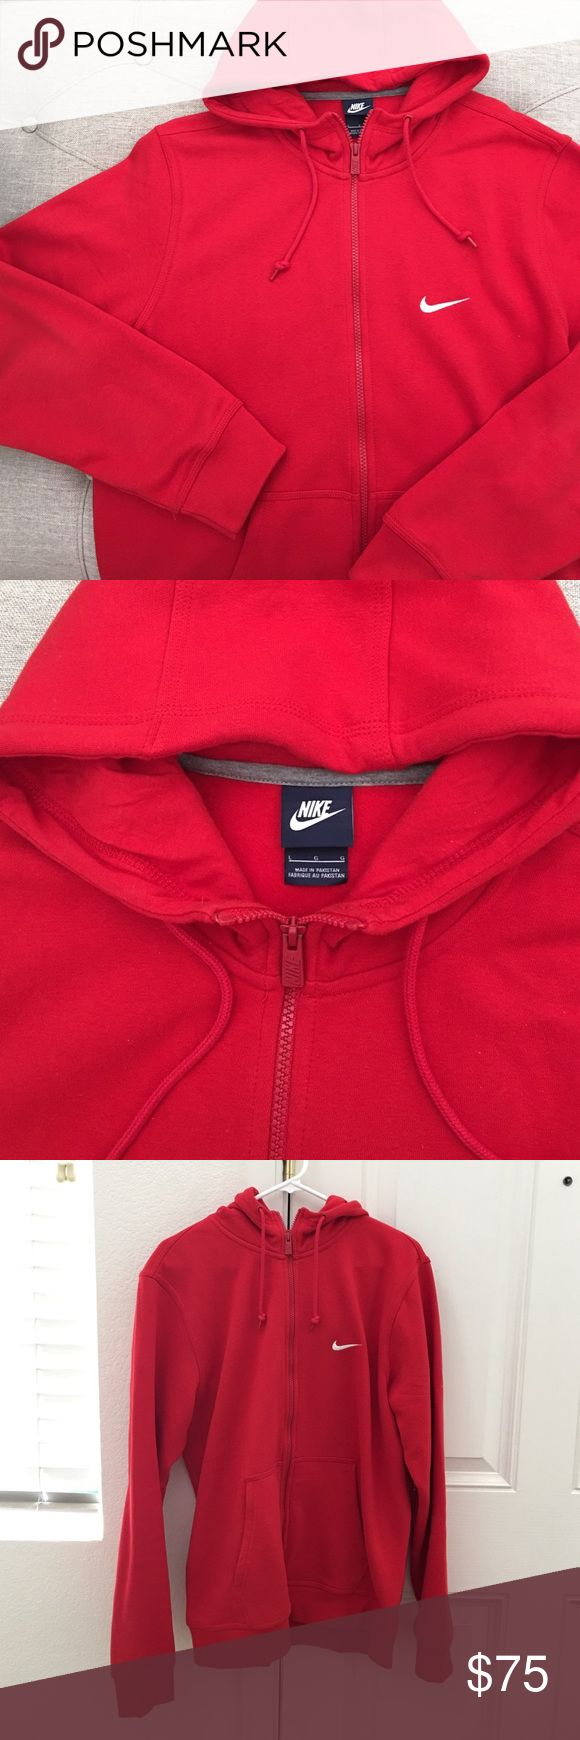 MEN: Nike Red Zip Up Hoodie Nike men's bright red zip up hoodie. Size large. Worn once, like new. My spouse thought it was too bright. Bundle-bundle to save; offer considered  Nike Sweaters Zip Up